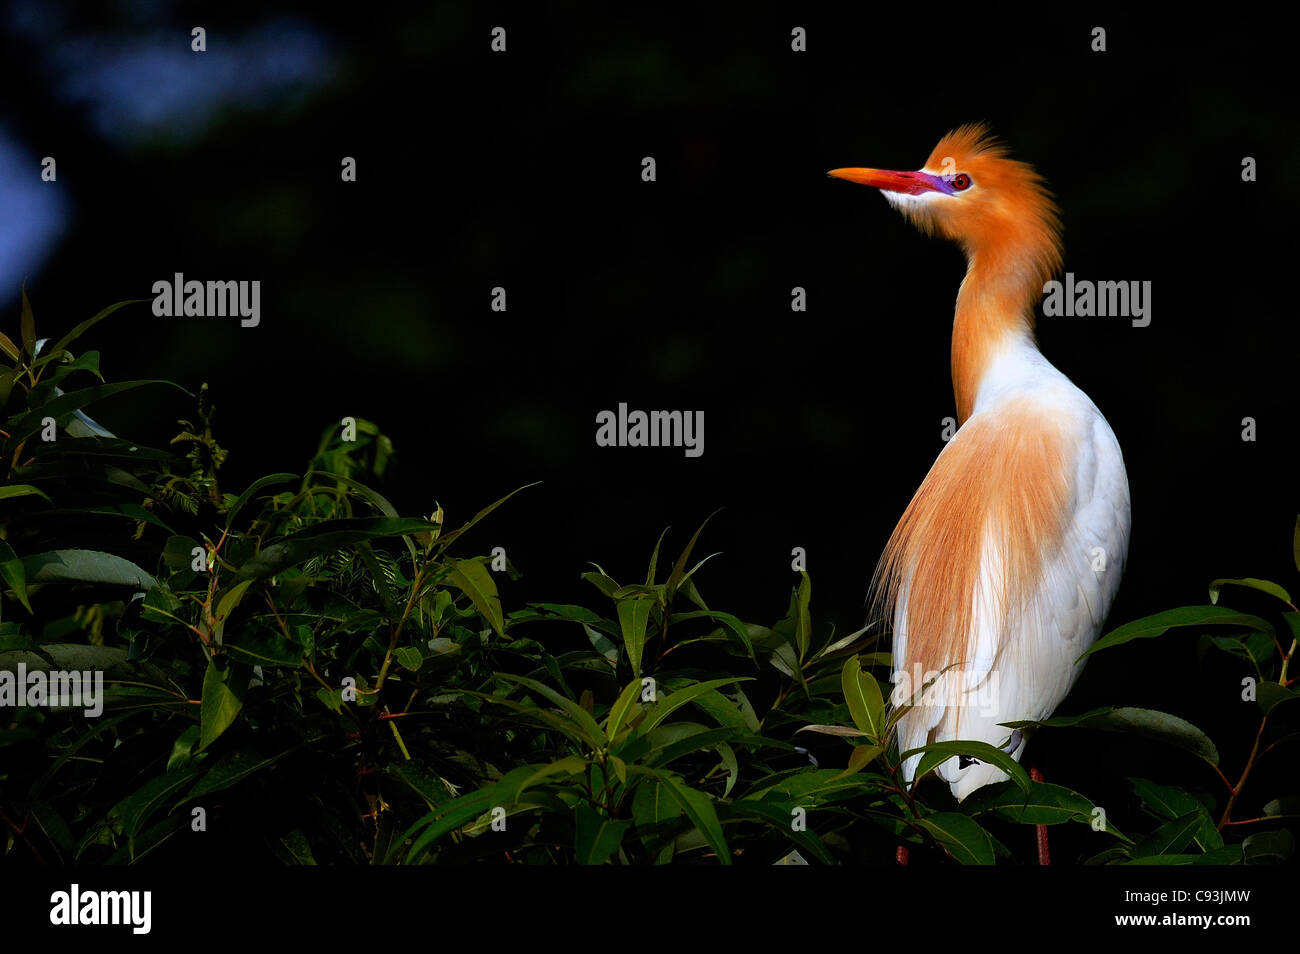 Cattle Egret (Bubulcus ibis) in breeding plumage perched on a tree Stock Photo